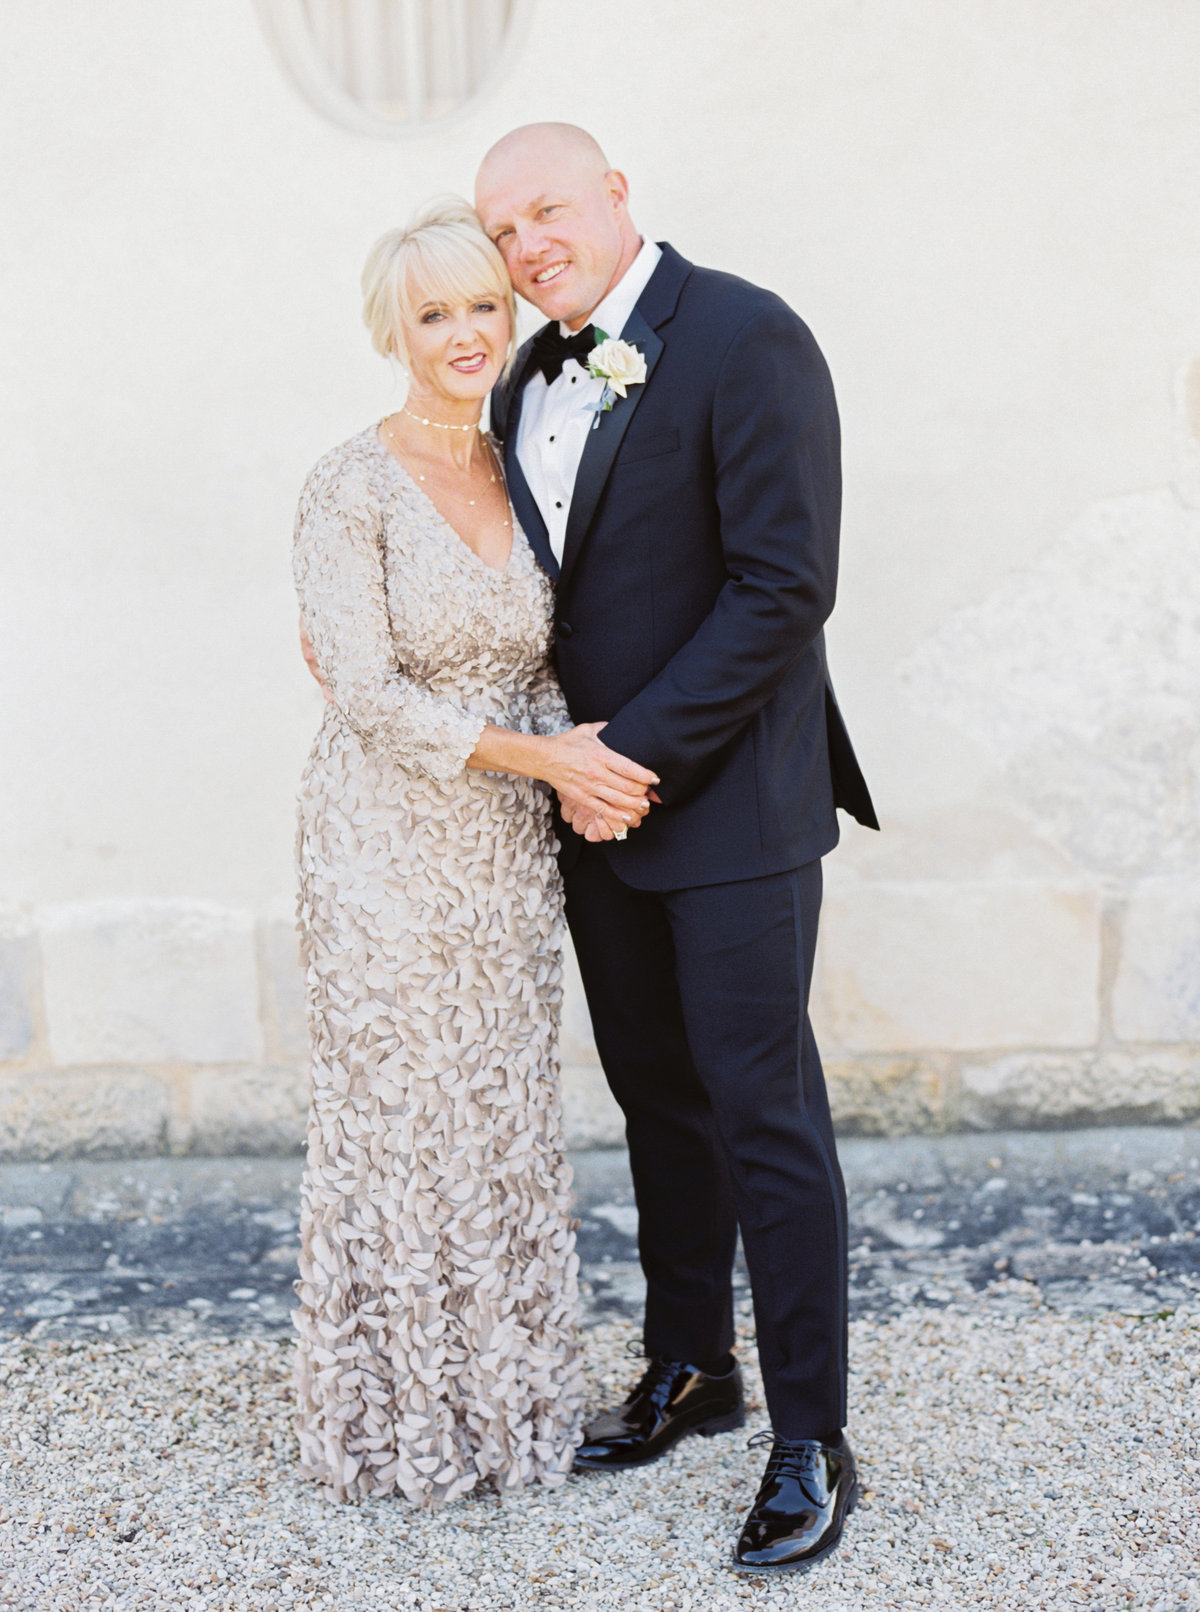 Paris France Wedding - Mary Claire Photography-3